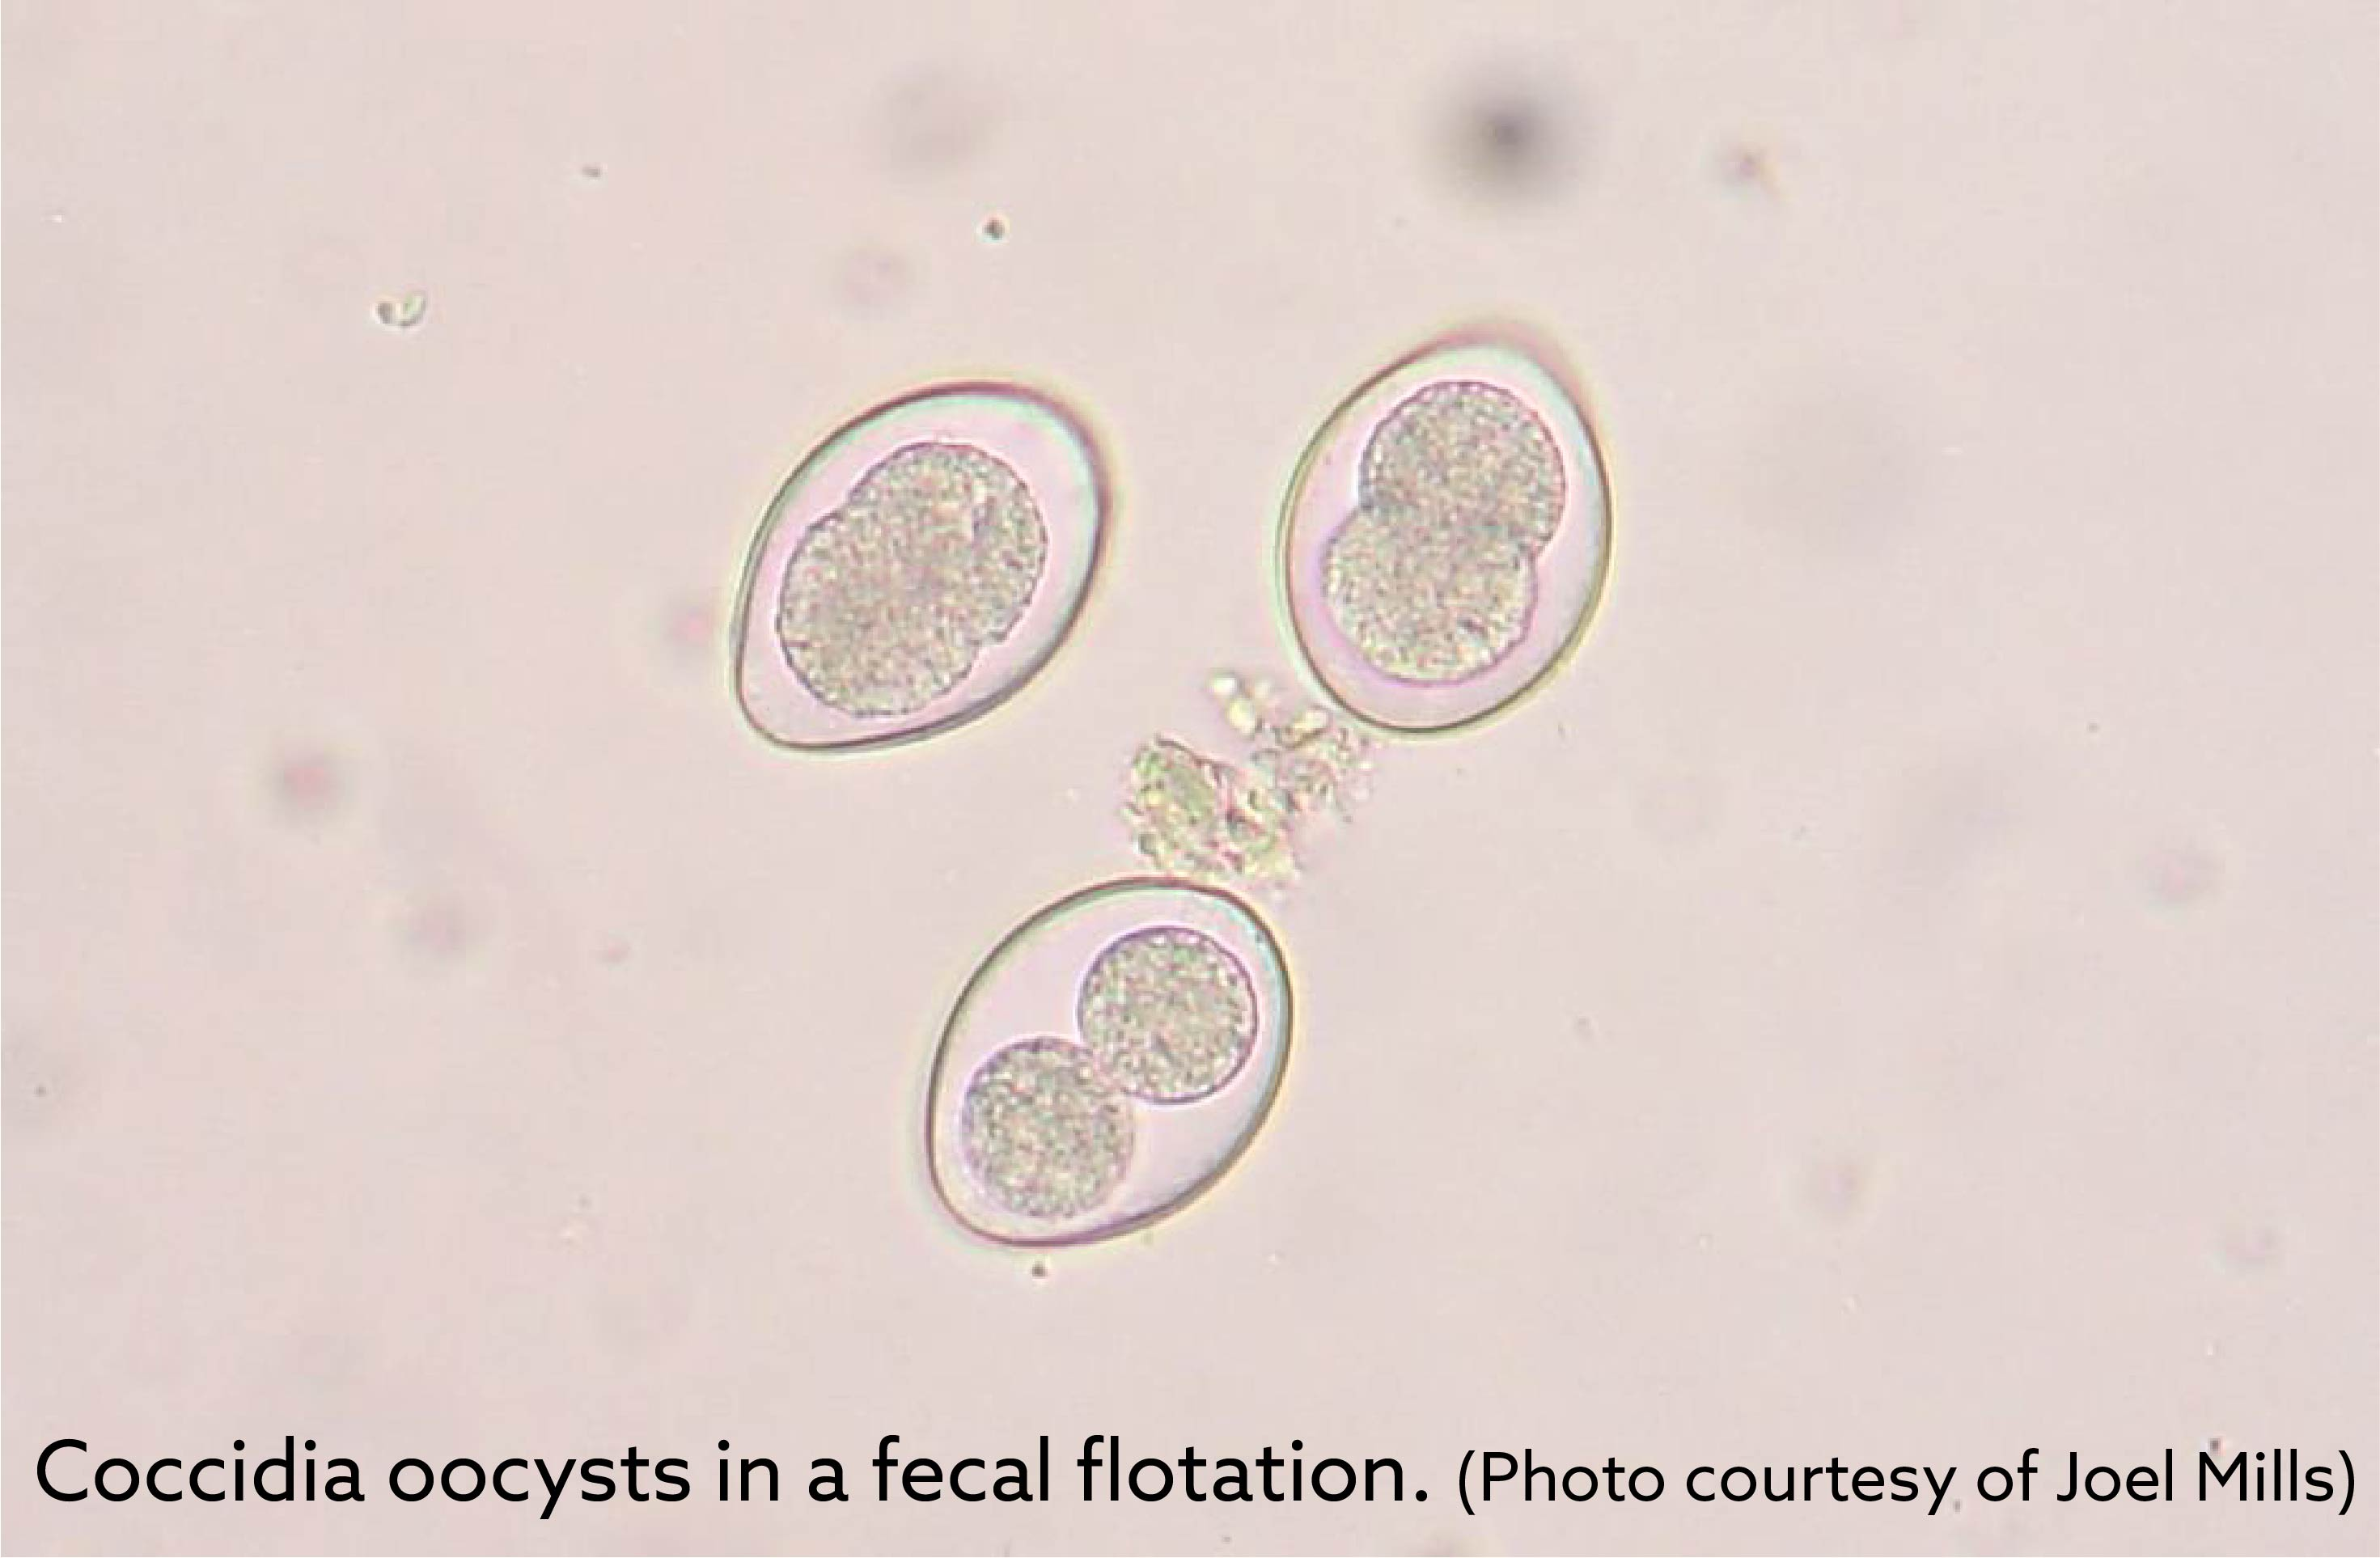 coccidia_oocysts-01